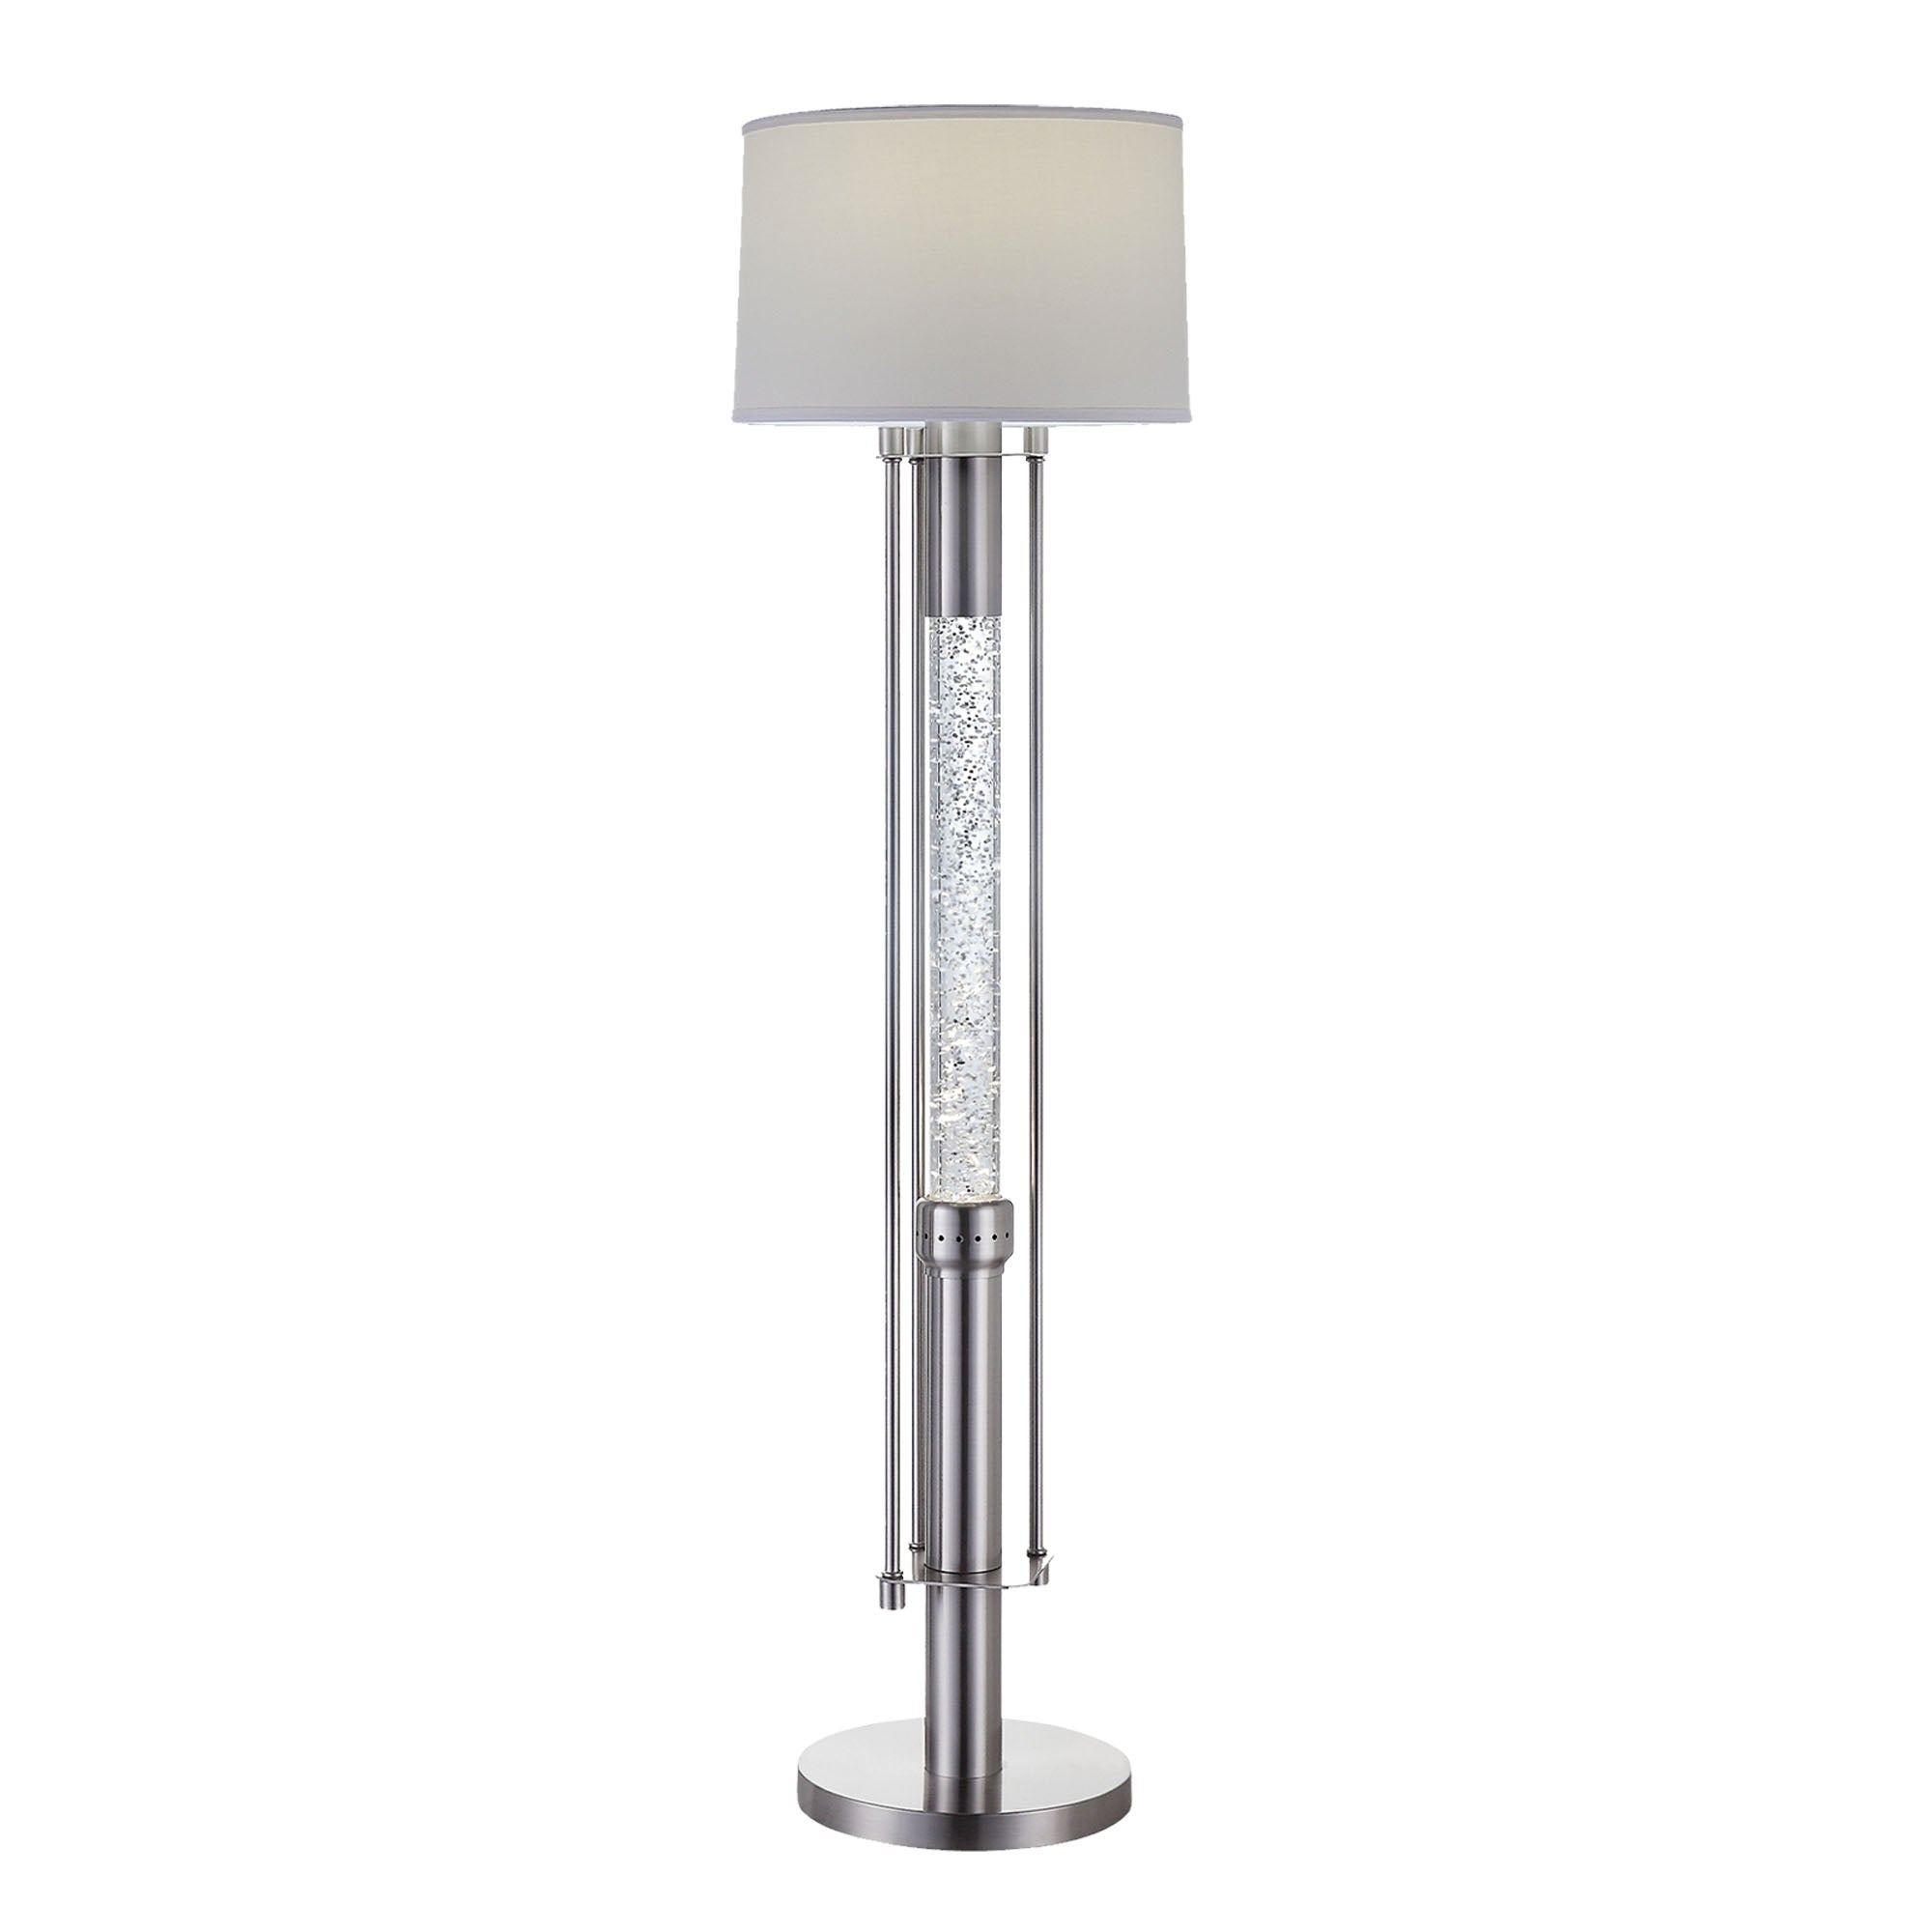 Contemporary Metal Floor Lamp with Fabric Drum Shade, Silver and White